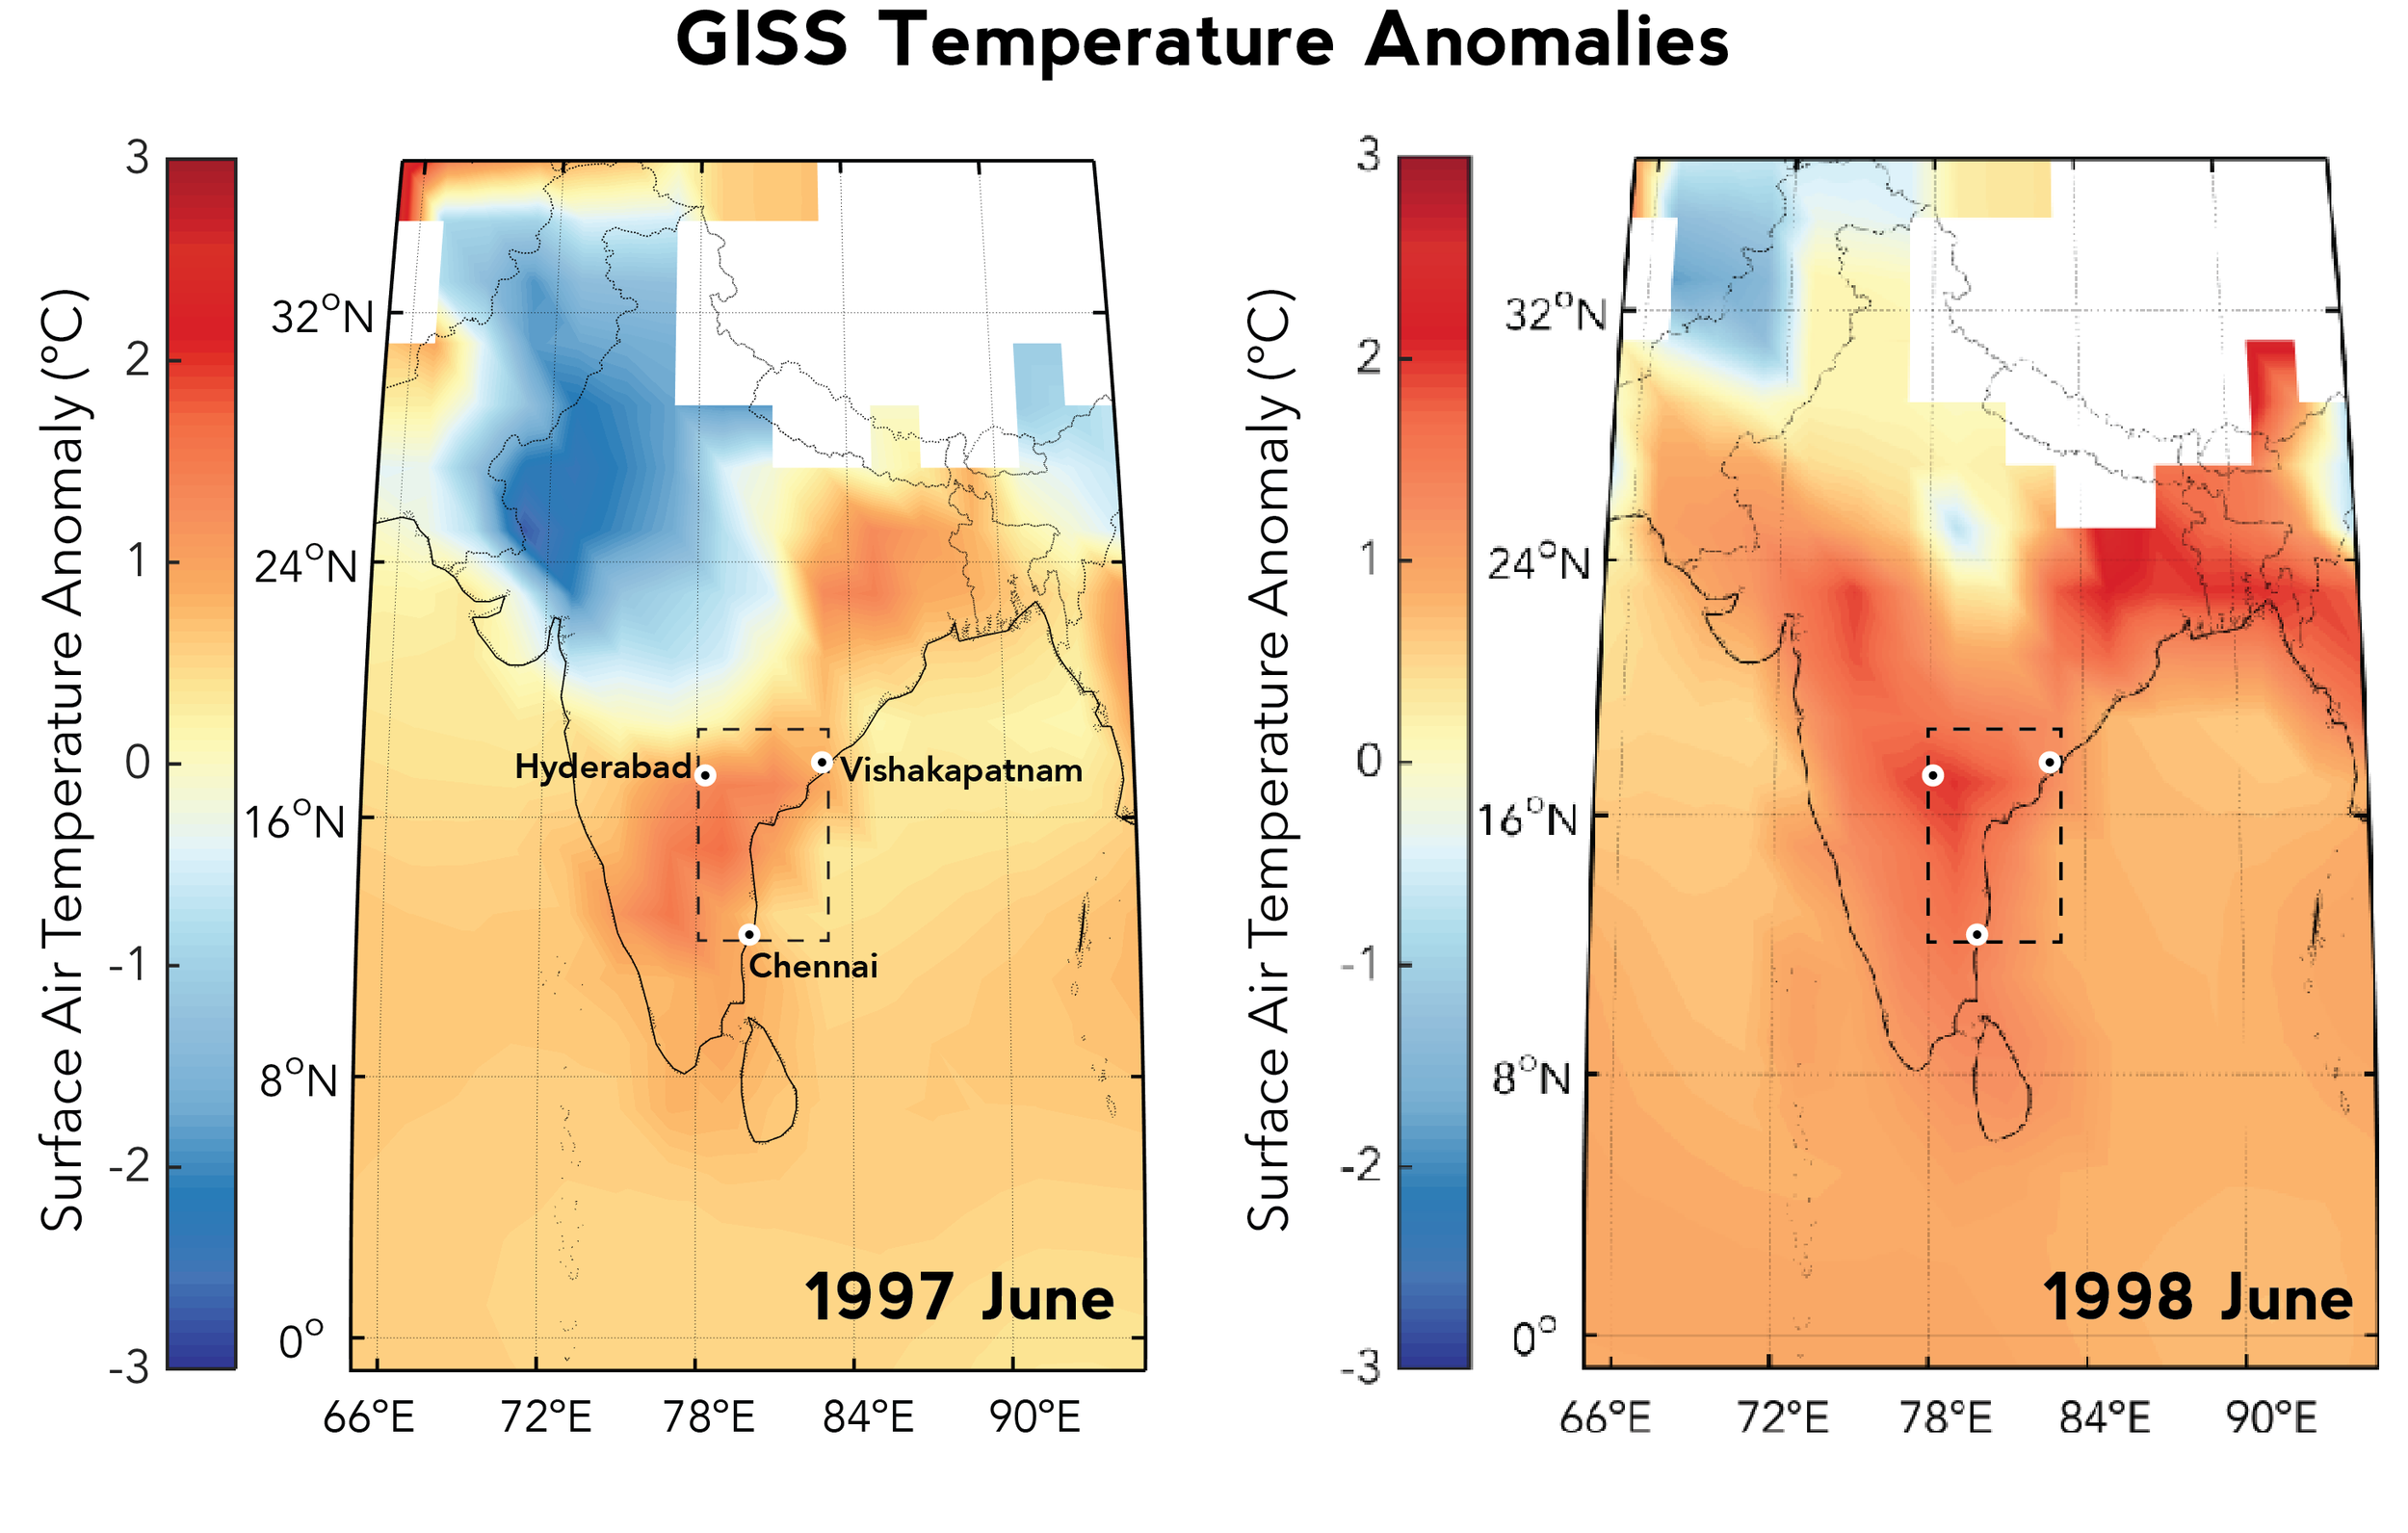 May-June 1998, during the '97-98 El Niño event, was the deadliest heat wave to hit India